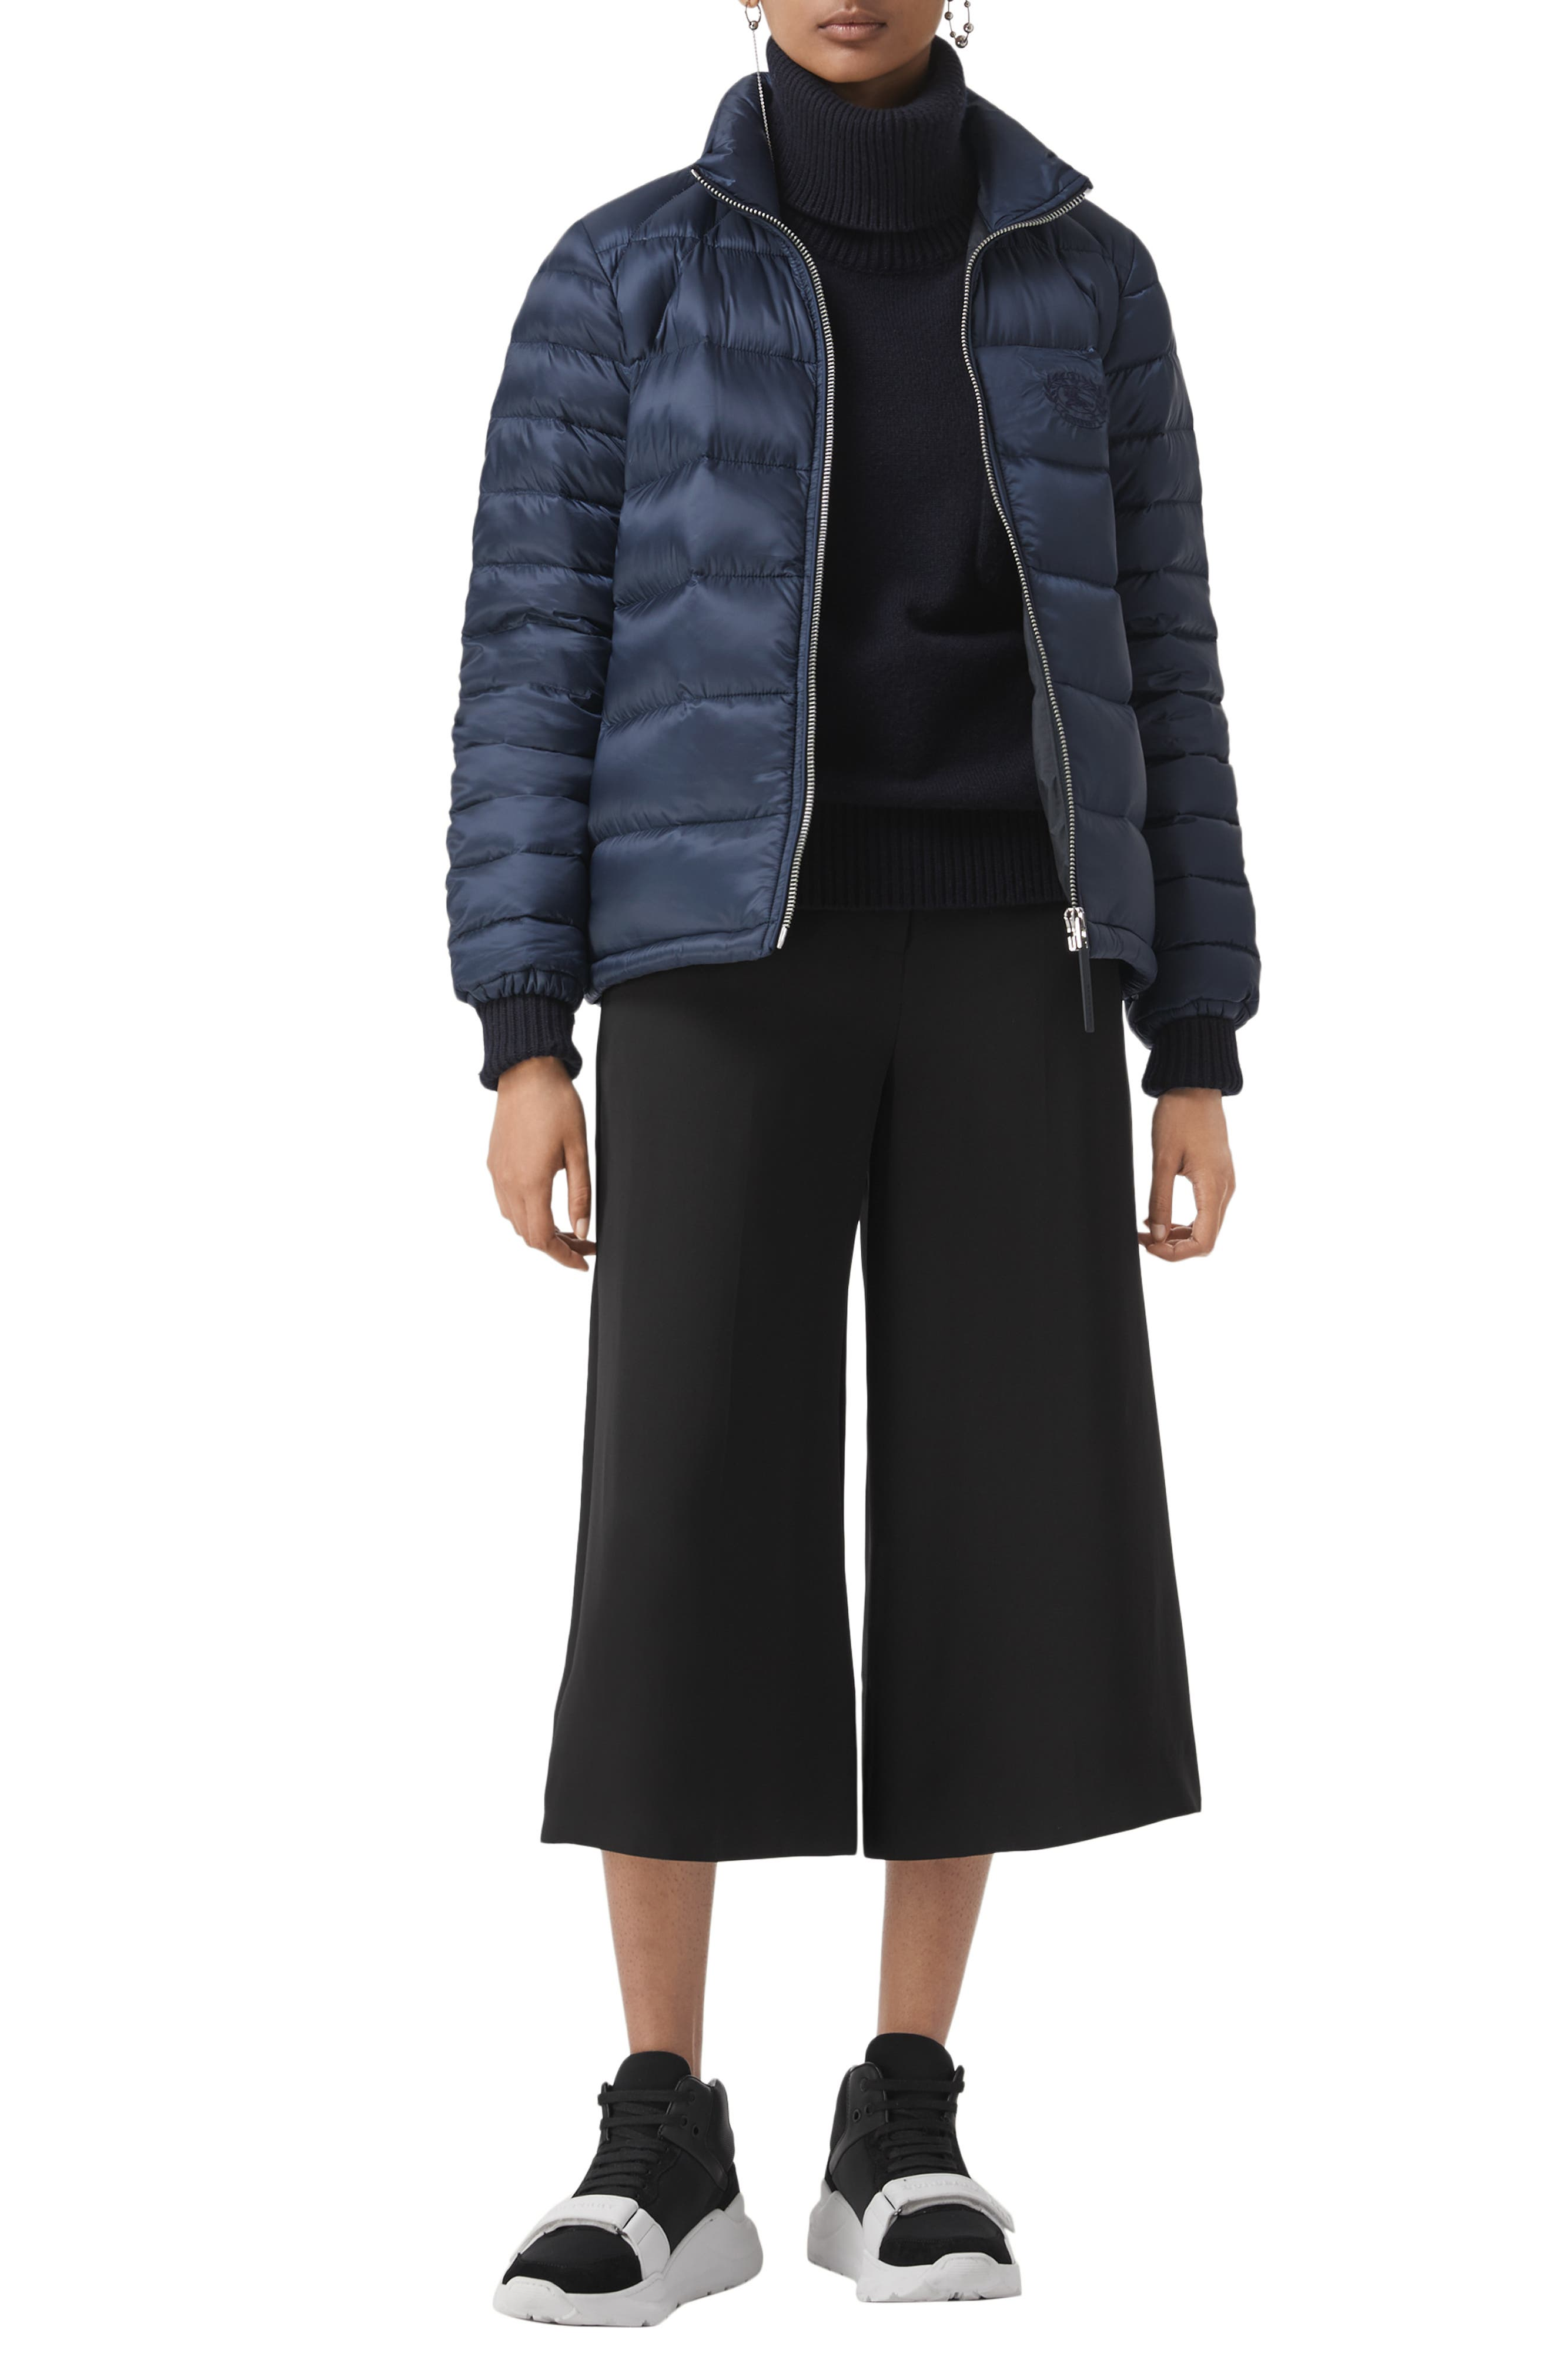 BURBERRY,                             Smethwick Archive Logo Quilted Down Puffer Coat,                             Alternate thumbnail 5, color,                             NAVY